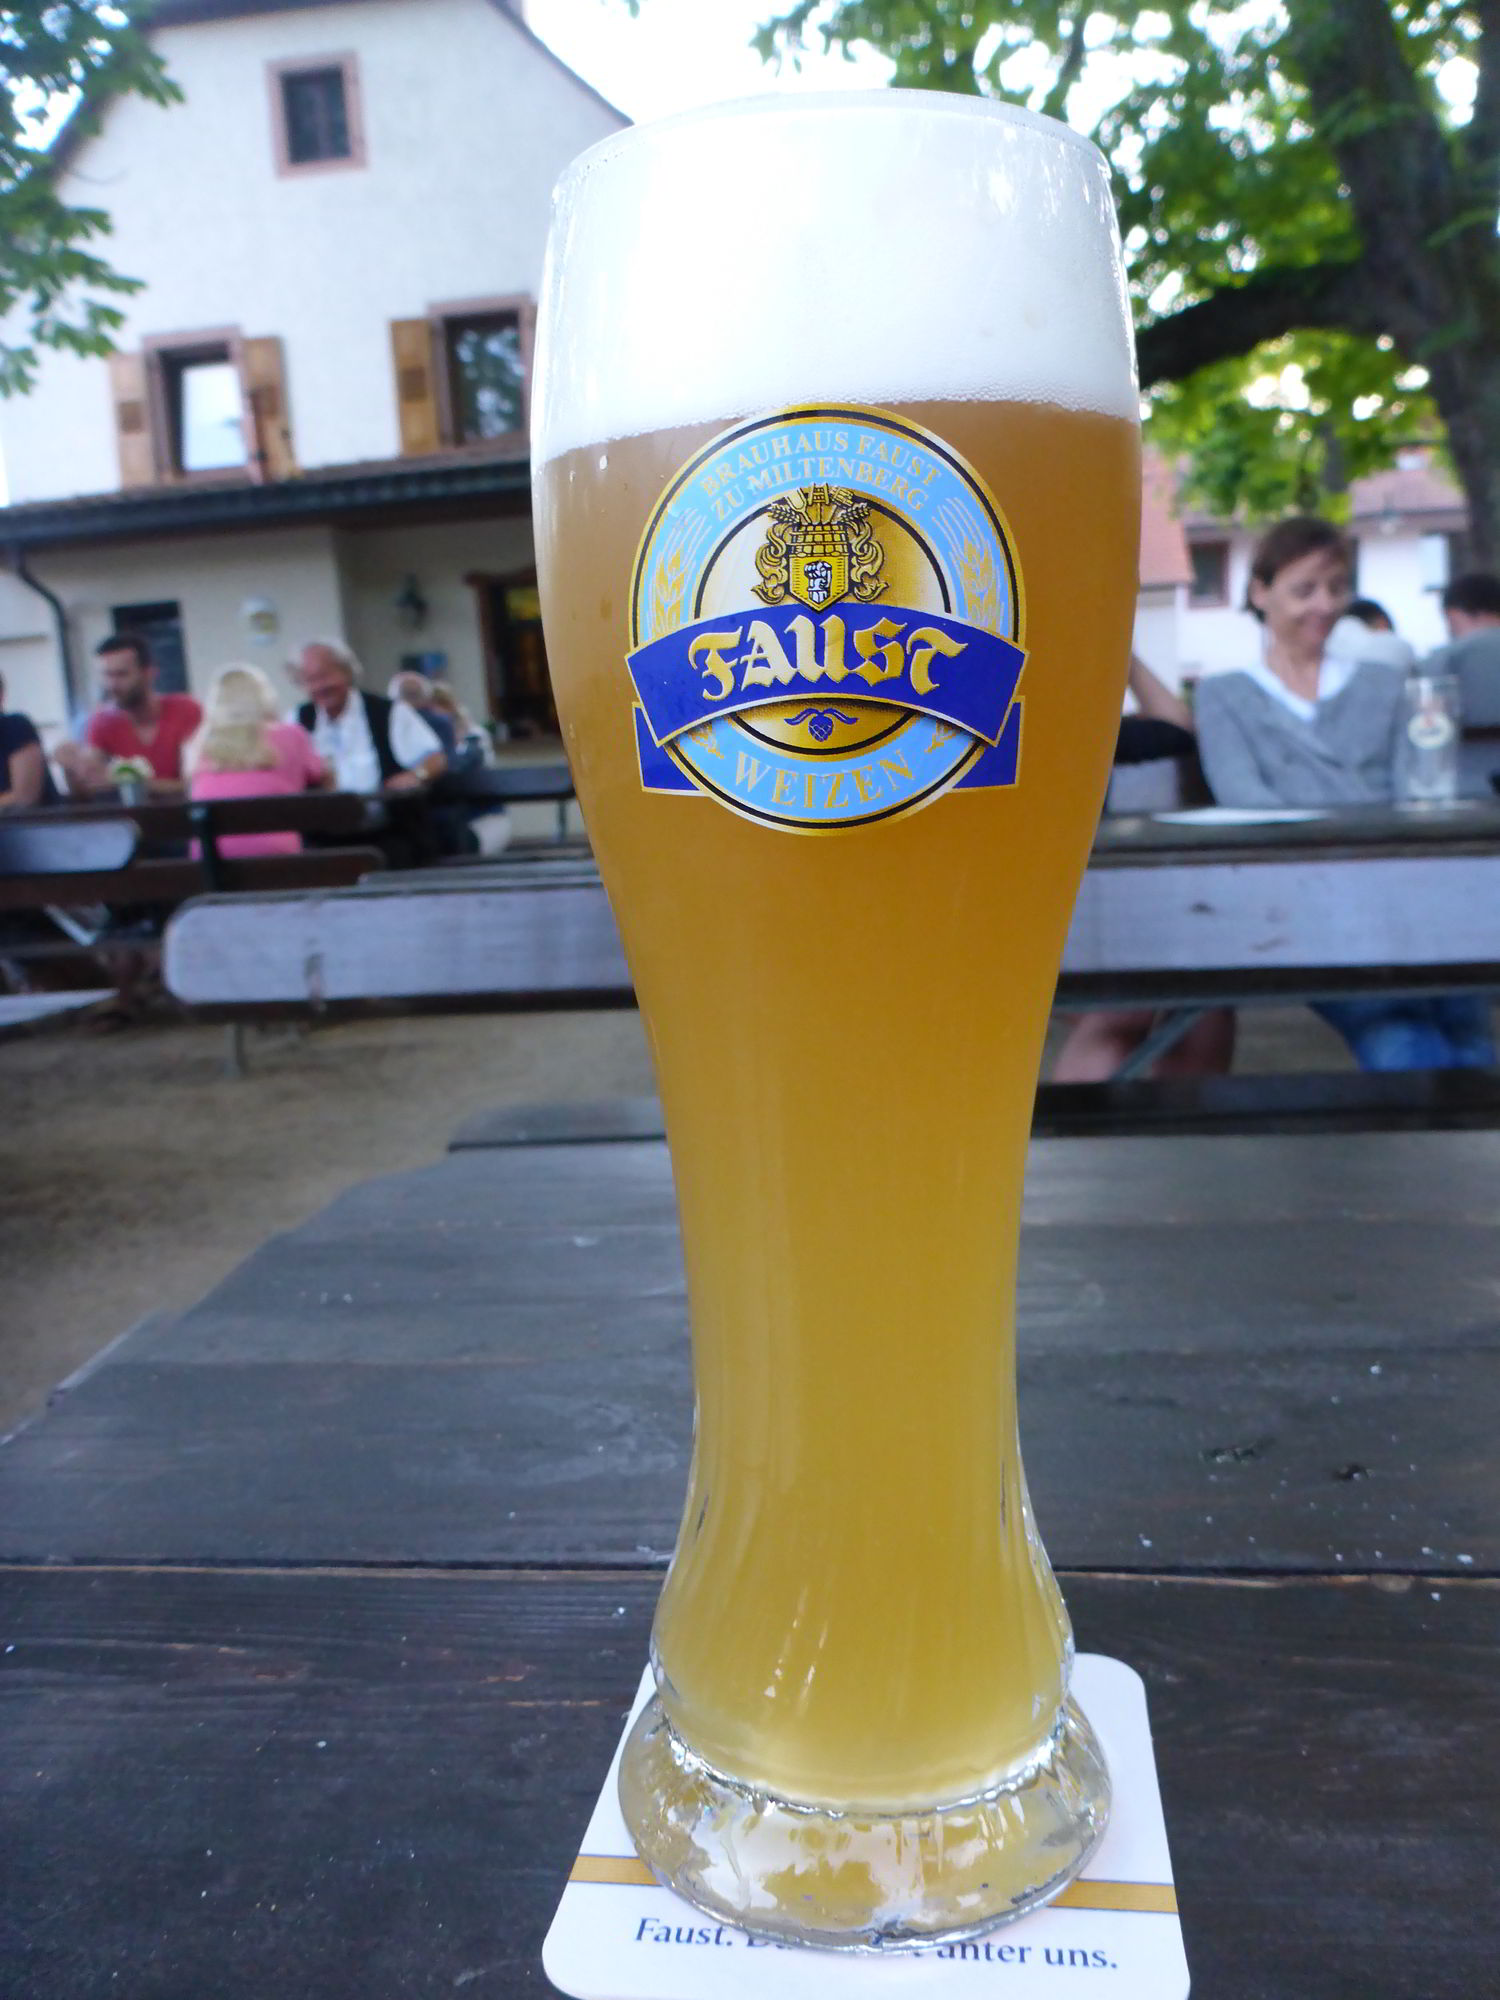 Faust, a German Beer